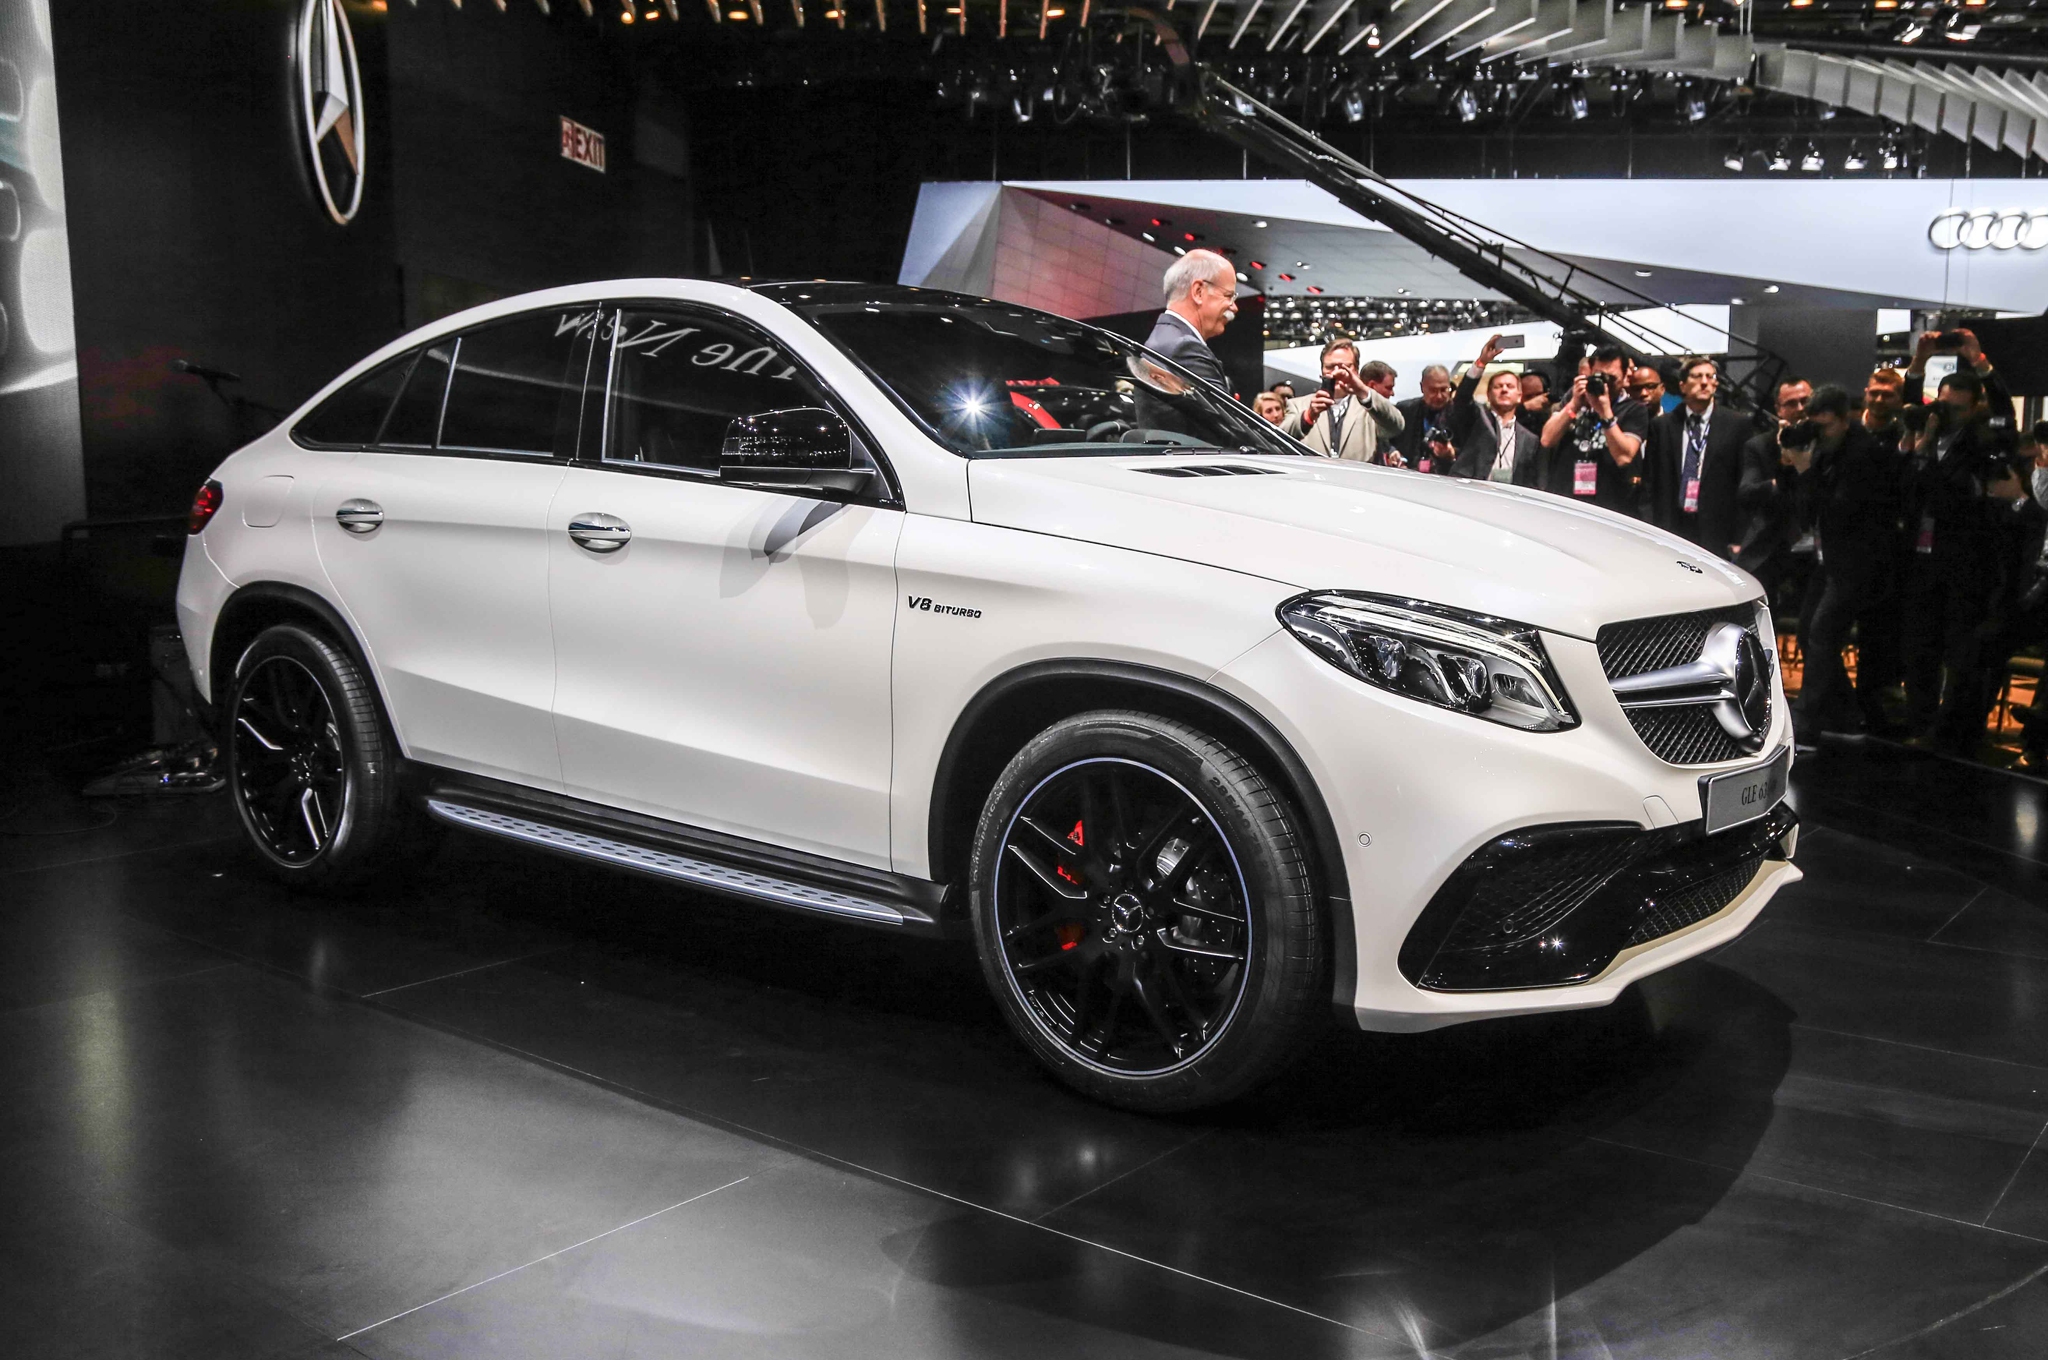 https://enthusiastnetwork.s3.amazonaws.com/uploads/sites/5/2015/01/2016-Mercedes-Benz-GLE63-S-AMG-4Matic-front-three-quarter.jpg?impolicy=entryimage